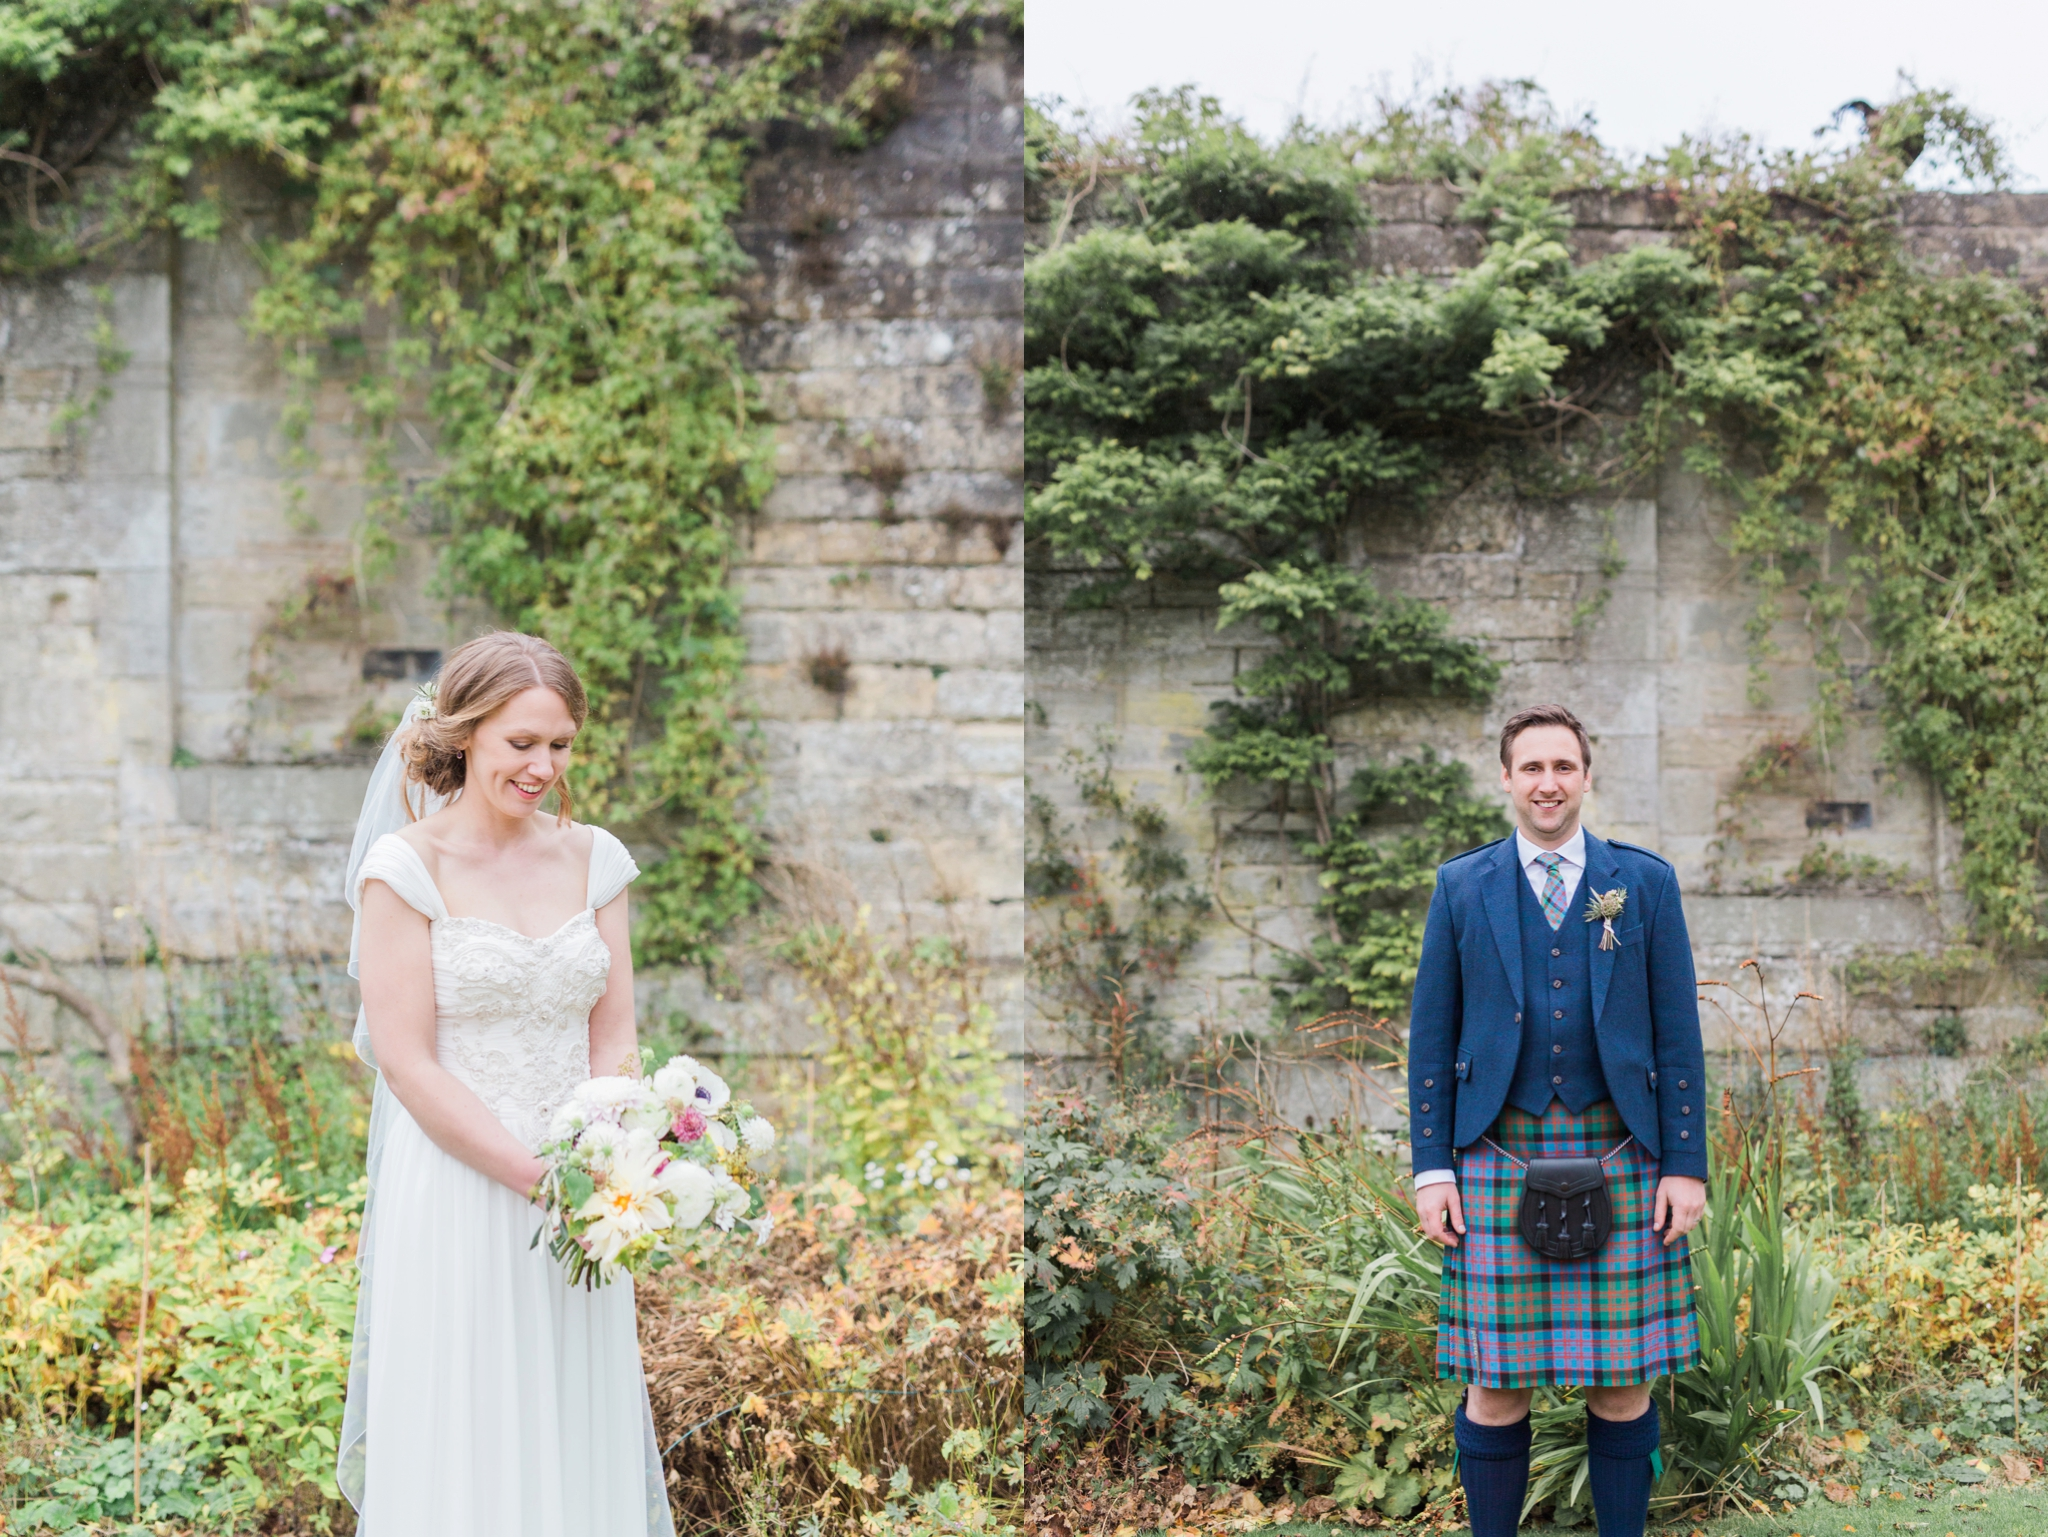 Suzanne_li_photography_kirknewton_wedding_0038.jpg